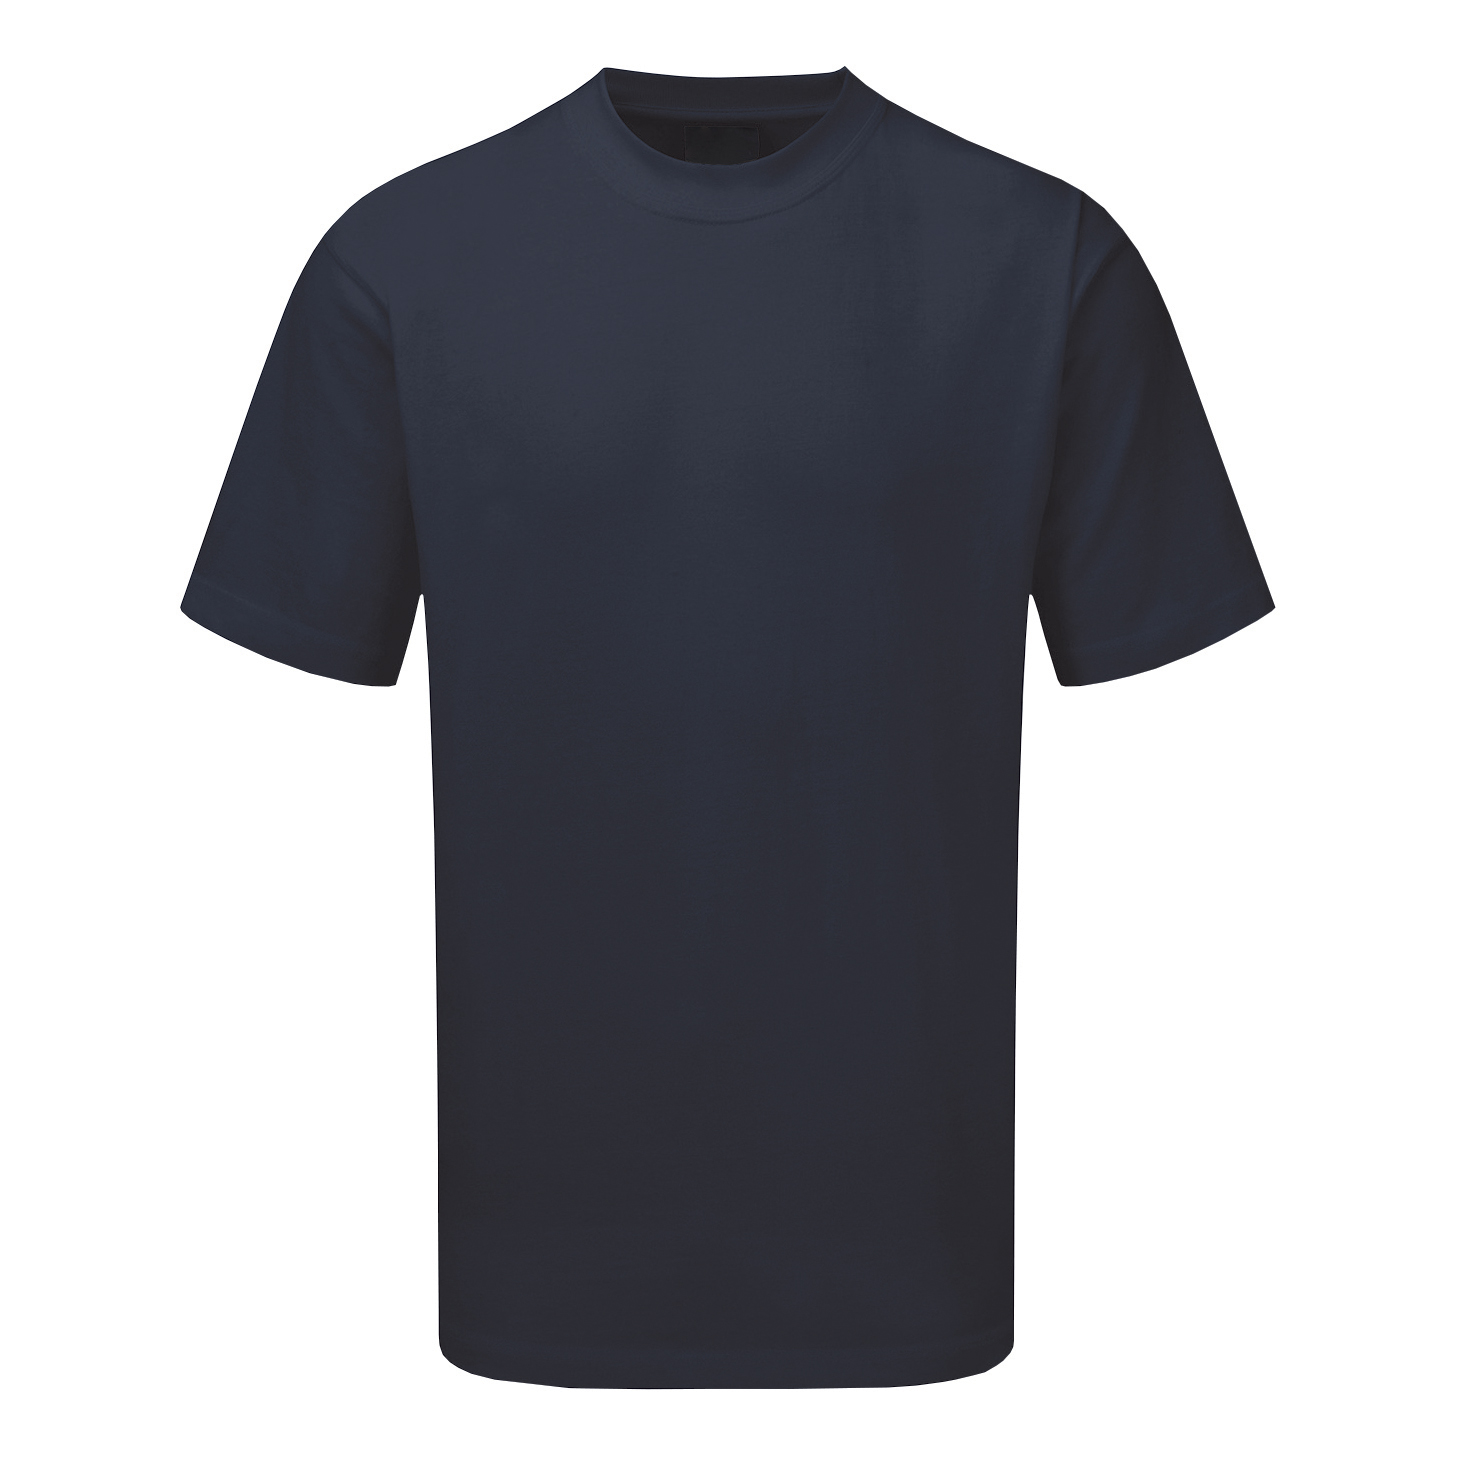 Premium T-Shirt Polycotton Triple Stitched 3XL Navy Blue